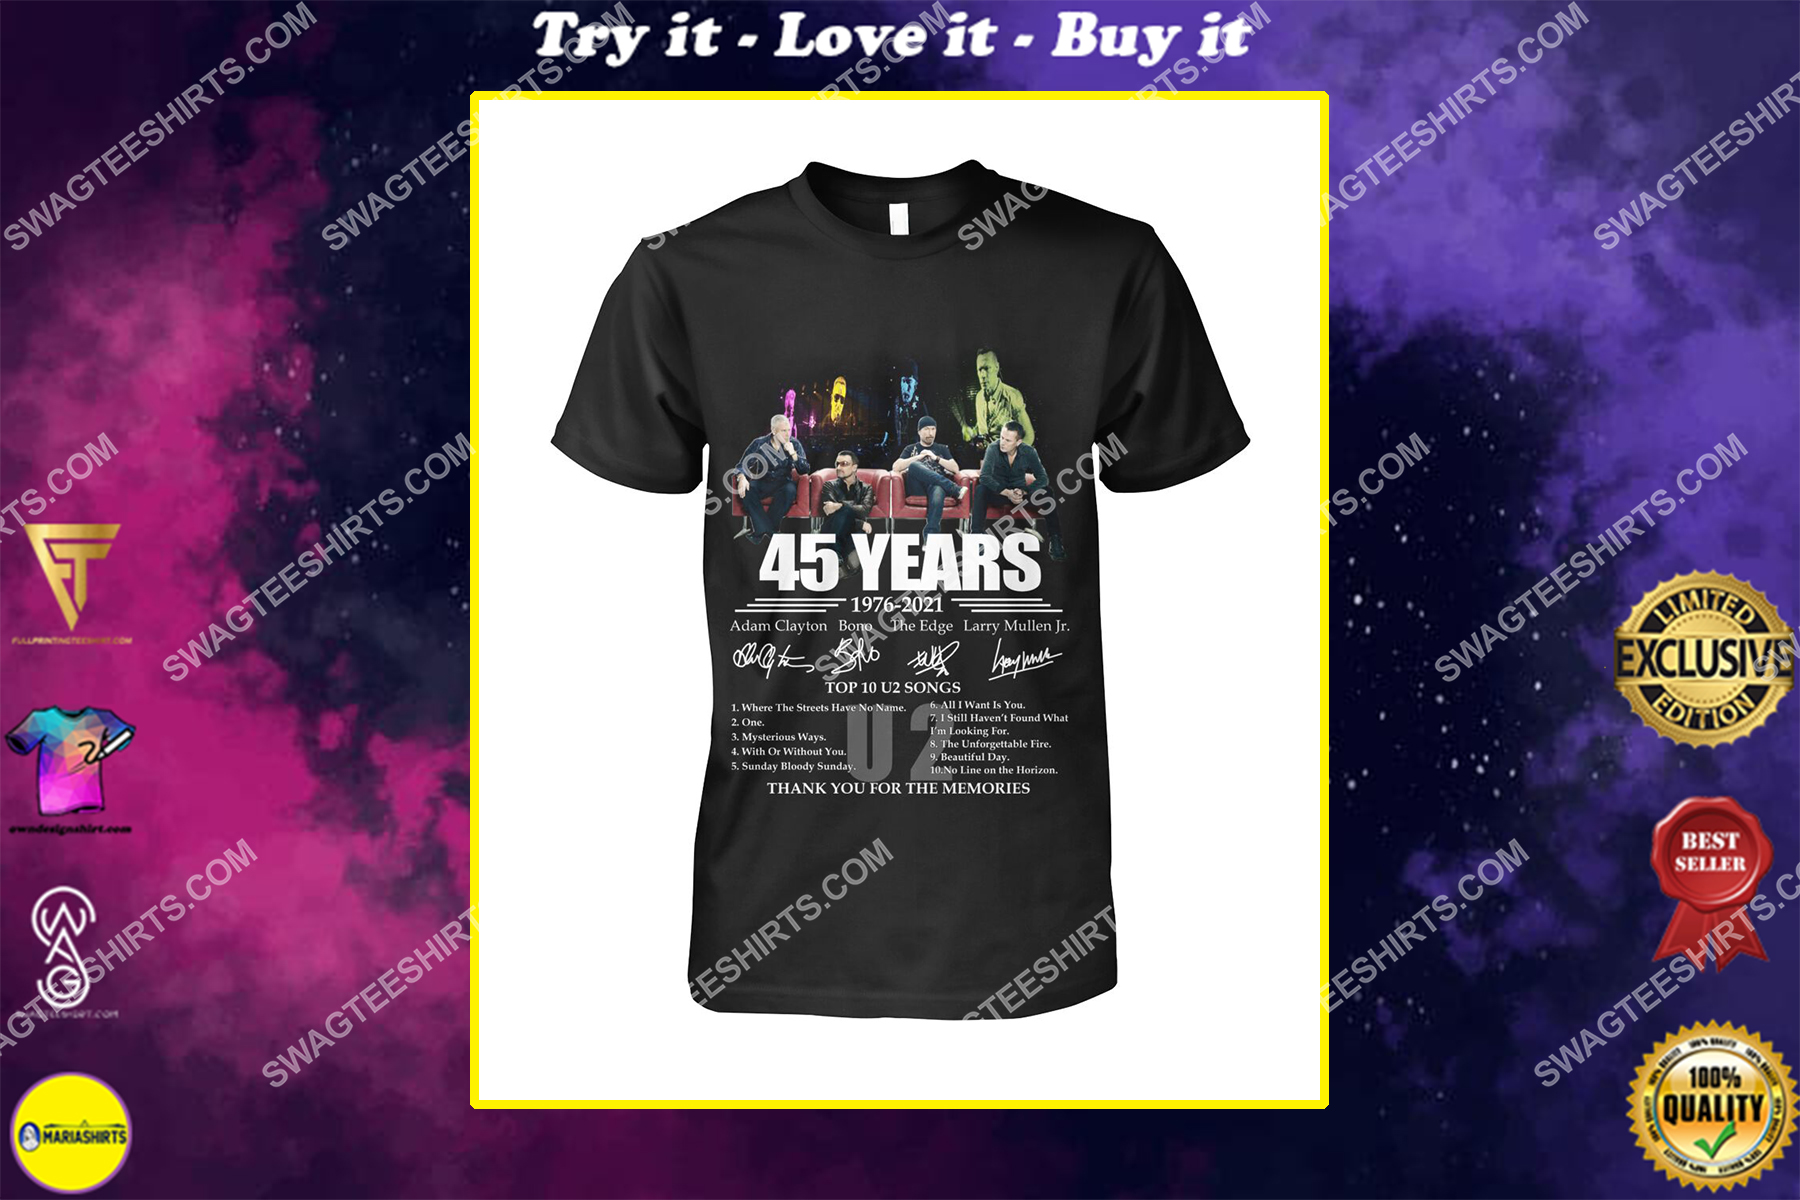 u2 band 45 years thank you for memories signatures shirt